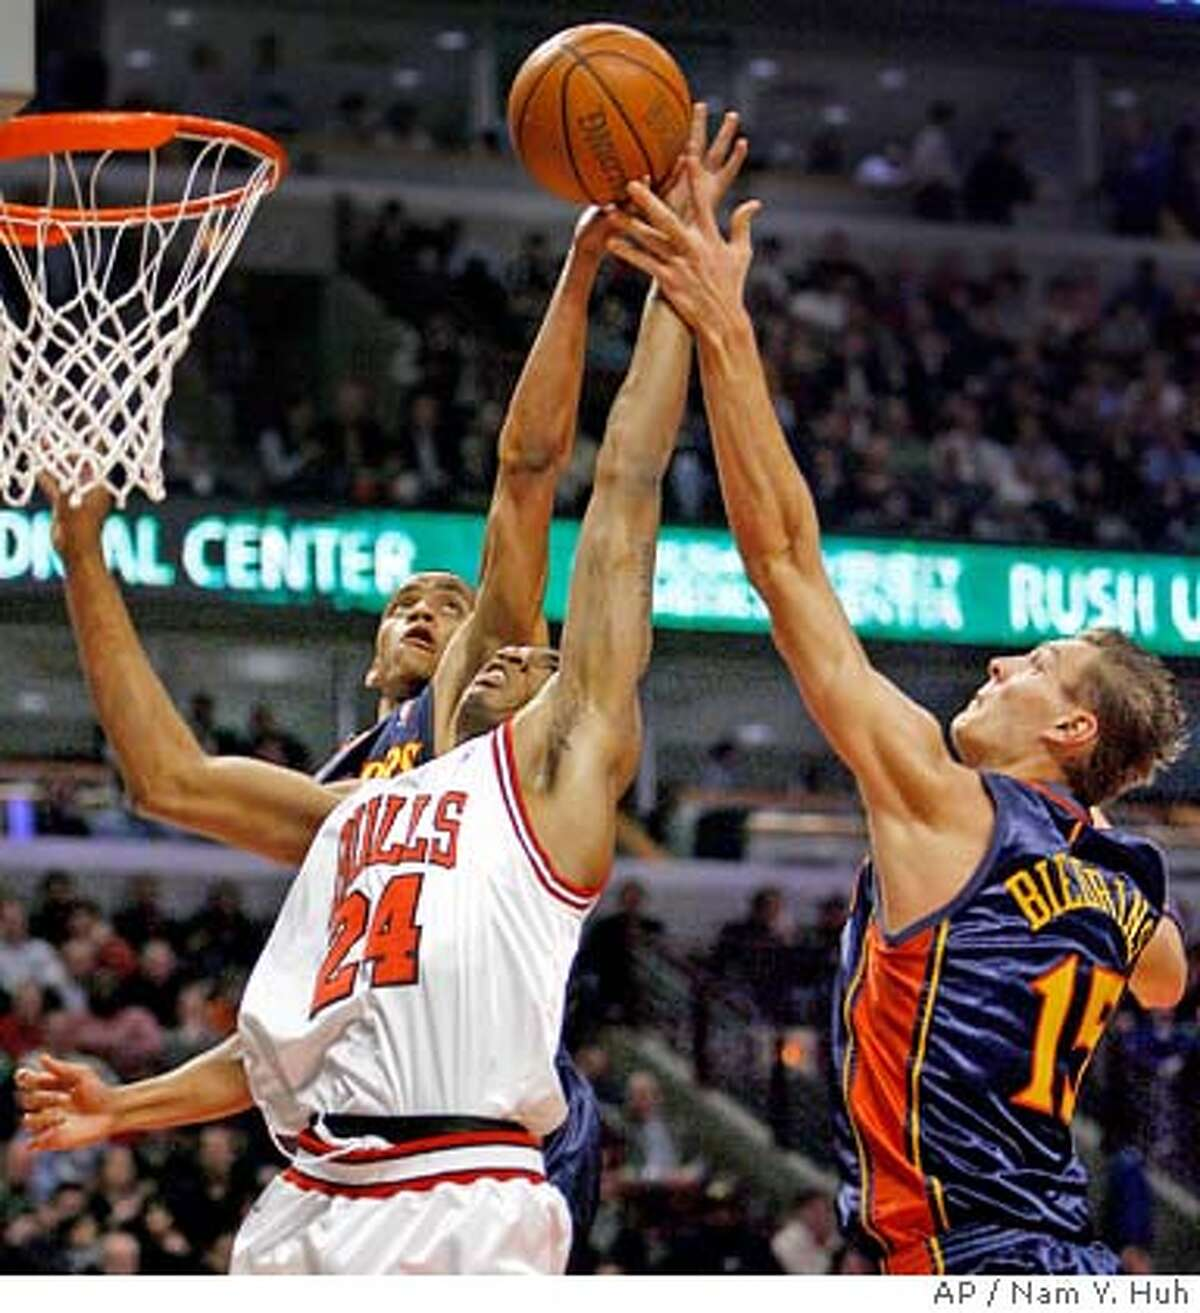 Chicago Bulls' Tyrus Thomas, center, battles for a rebound with Golden State Warriors' Monta Ellis, left, and Andris Biedrins during the first quarter of an NBA basketball game in Chicago, Wednesday, Feb. 28, 2007.(AP Photo/Nam Y. Huh)